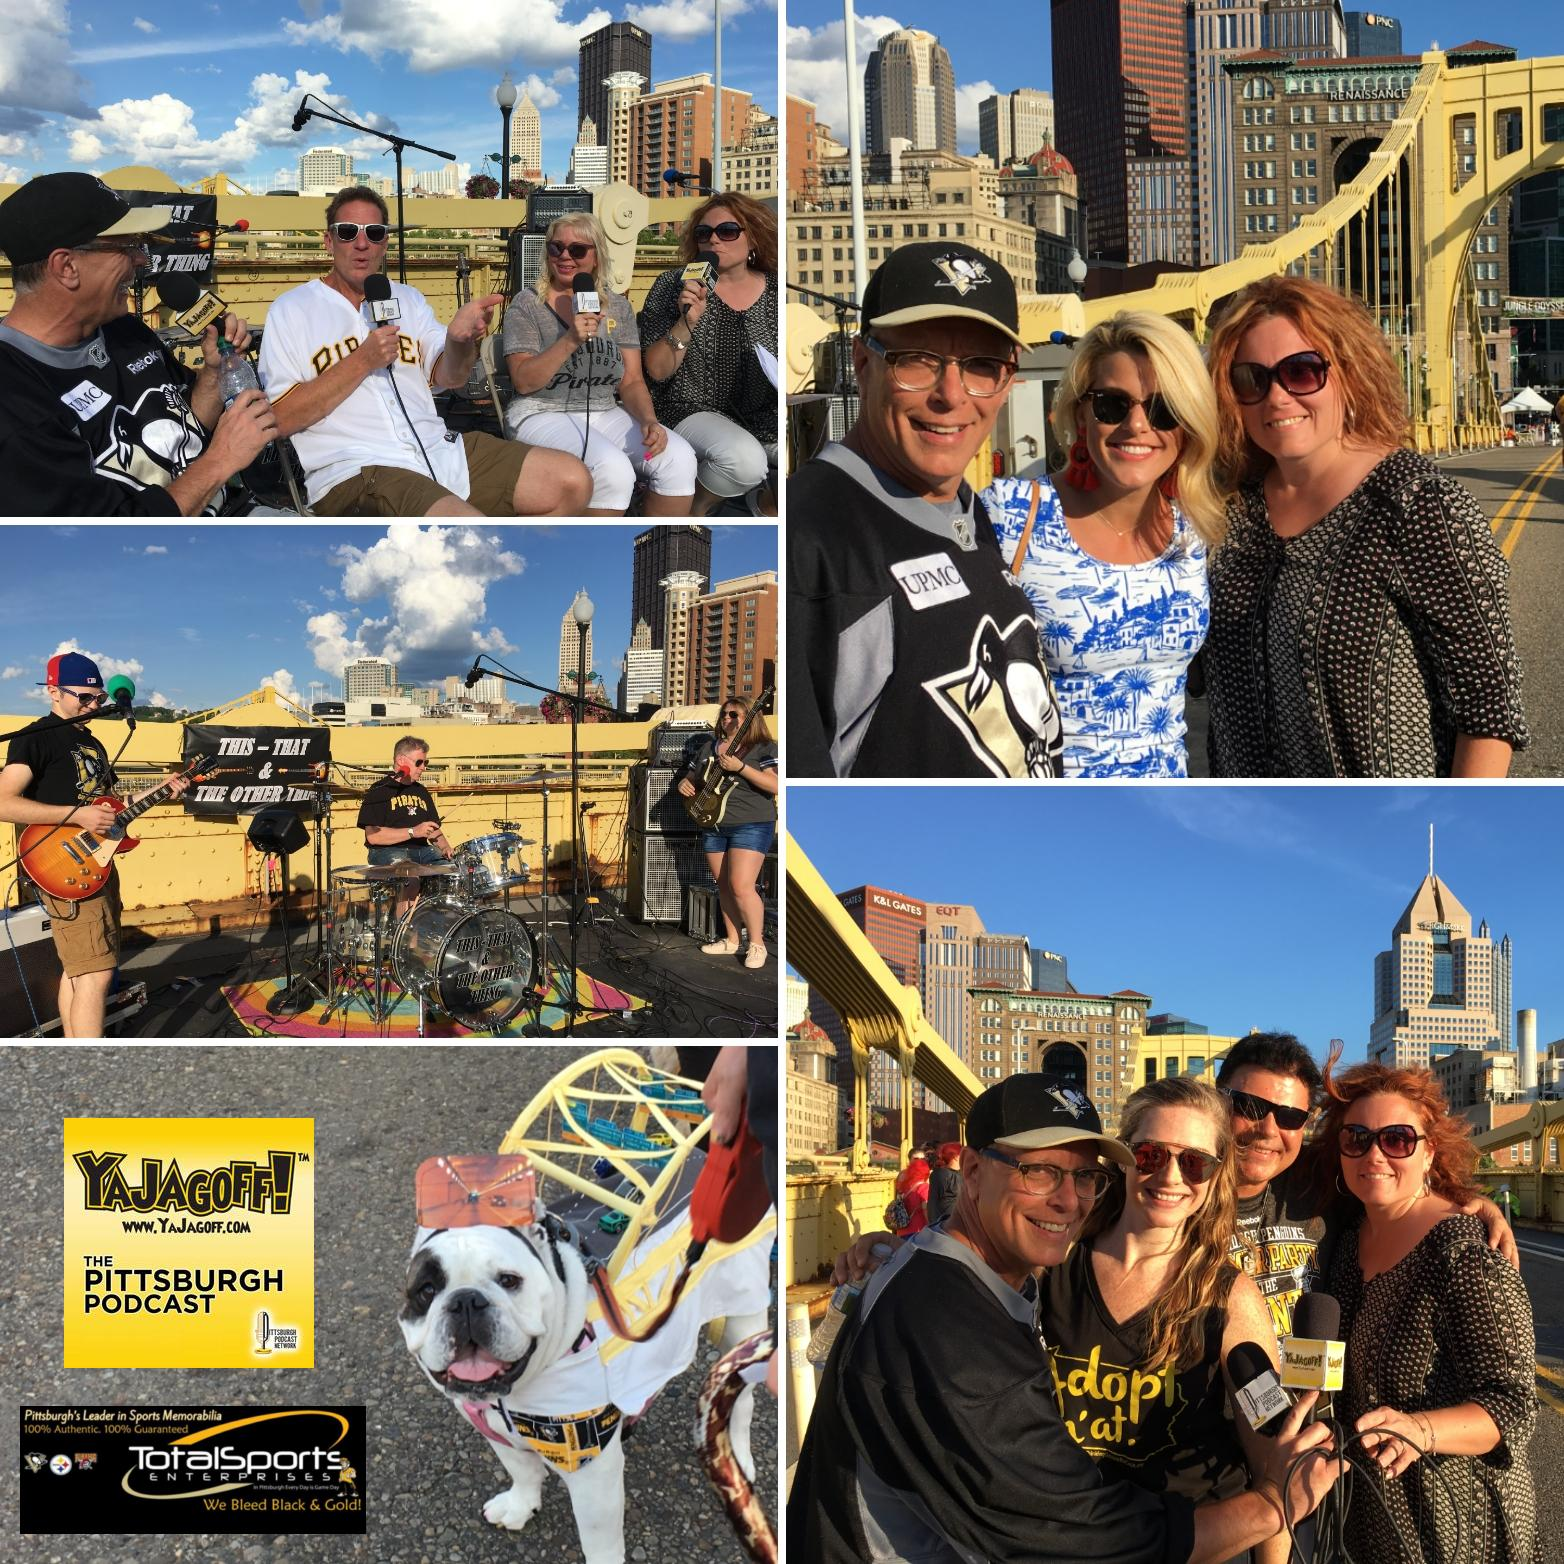 YaJagoff Podcast, Episode 76 – On the Clemente Bridge at Bark n'At